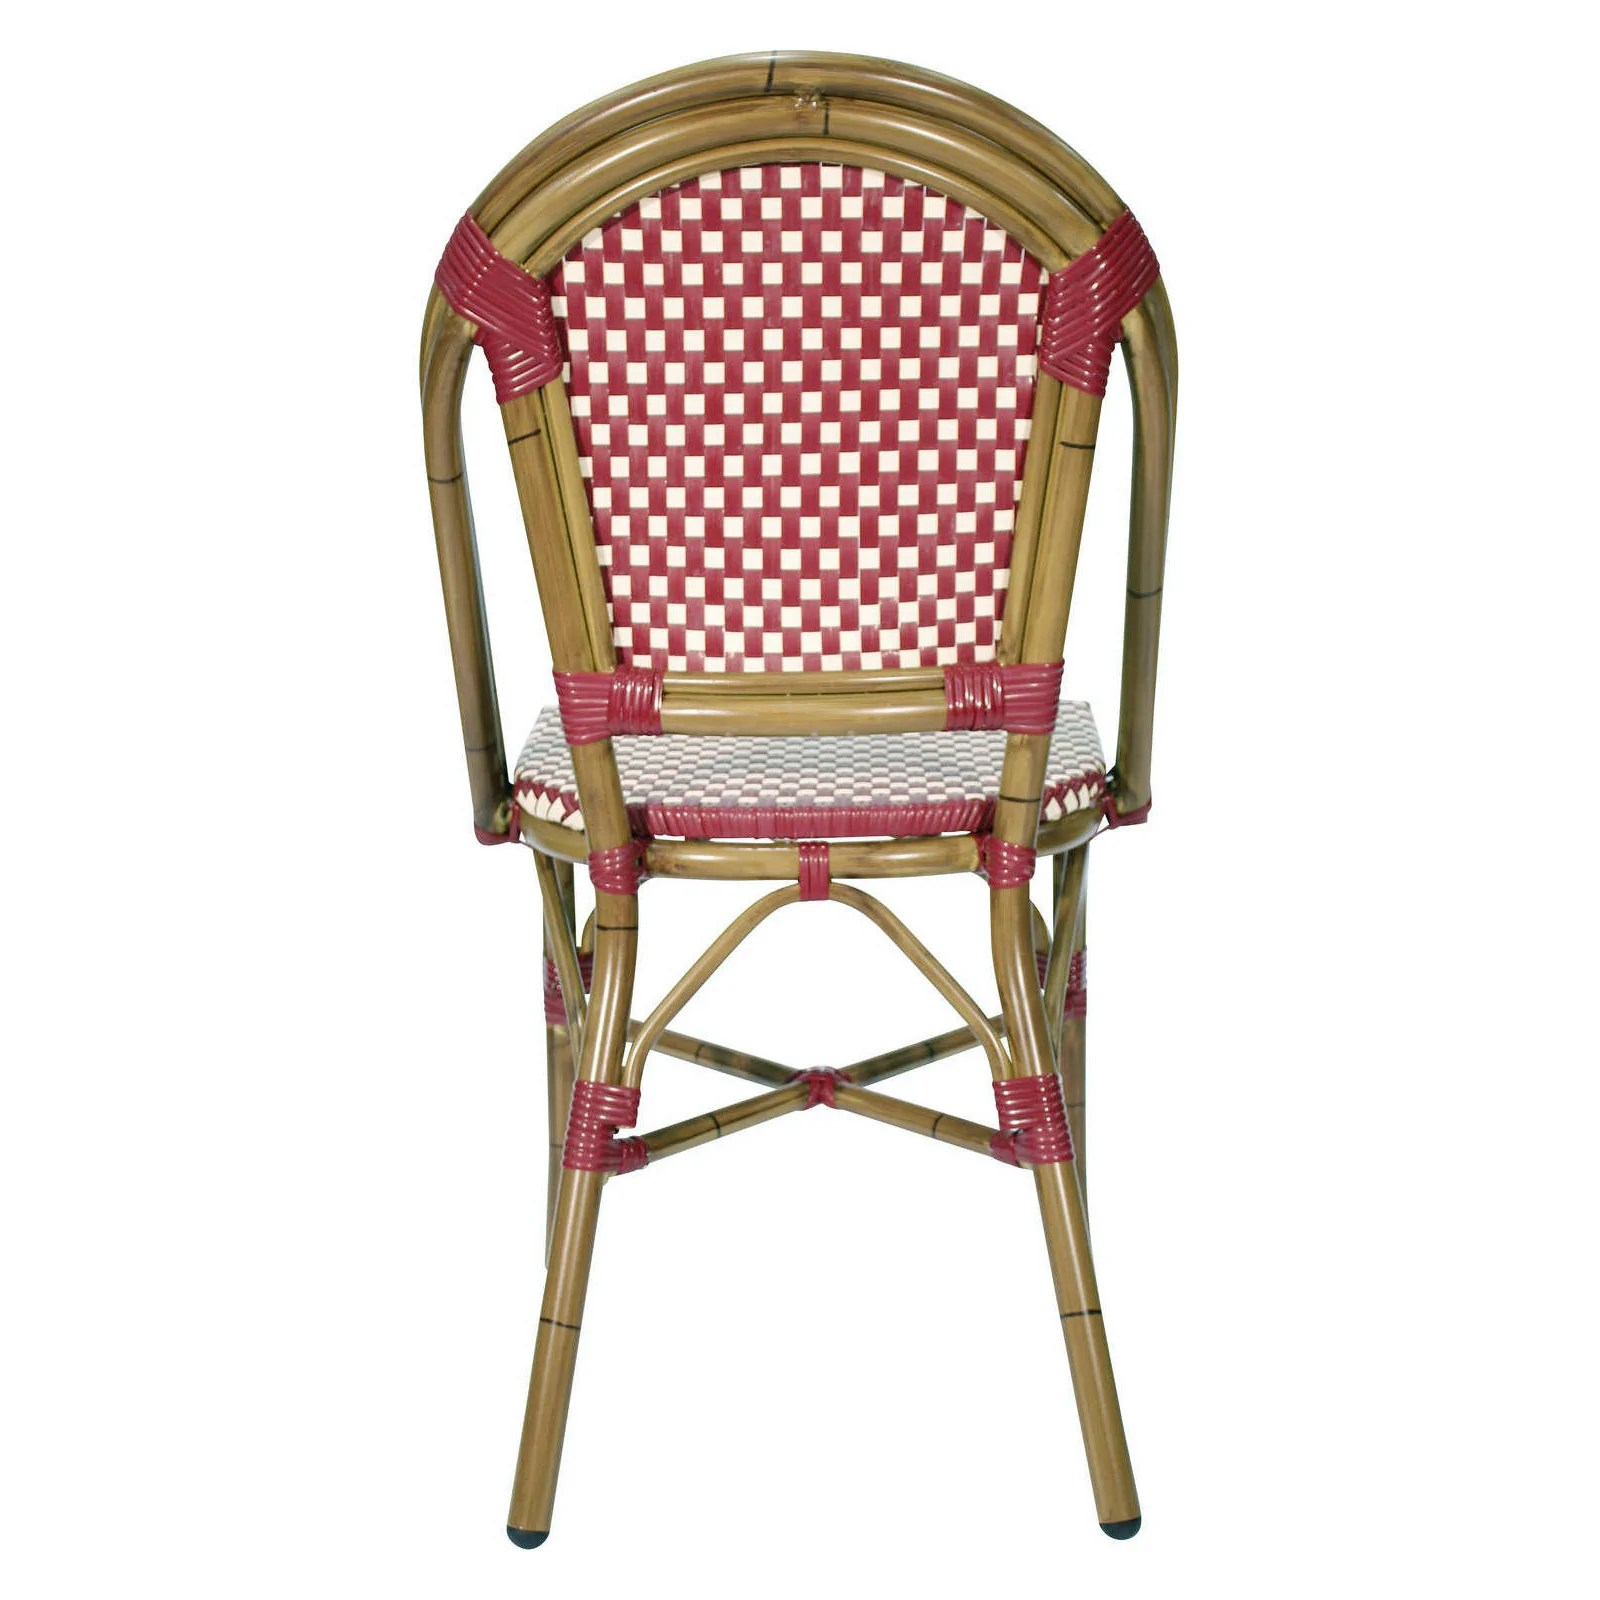 paris cafe chairs wooden high chair tray restaurant hospitality